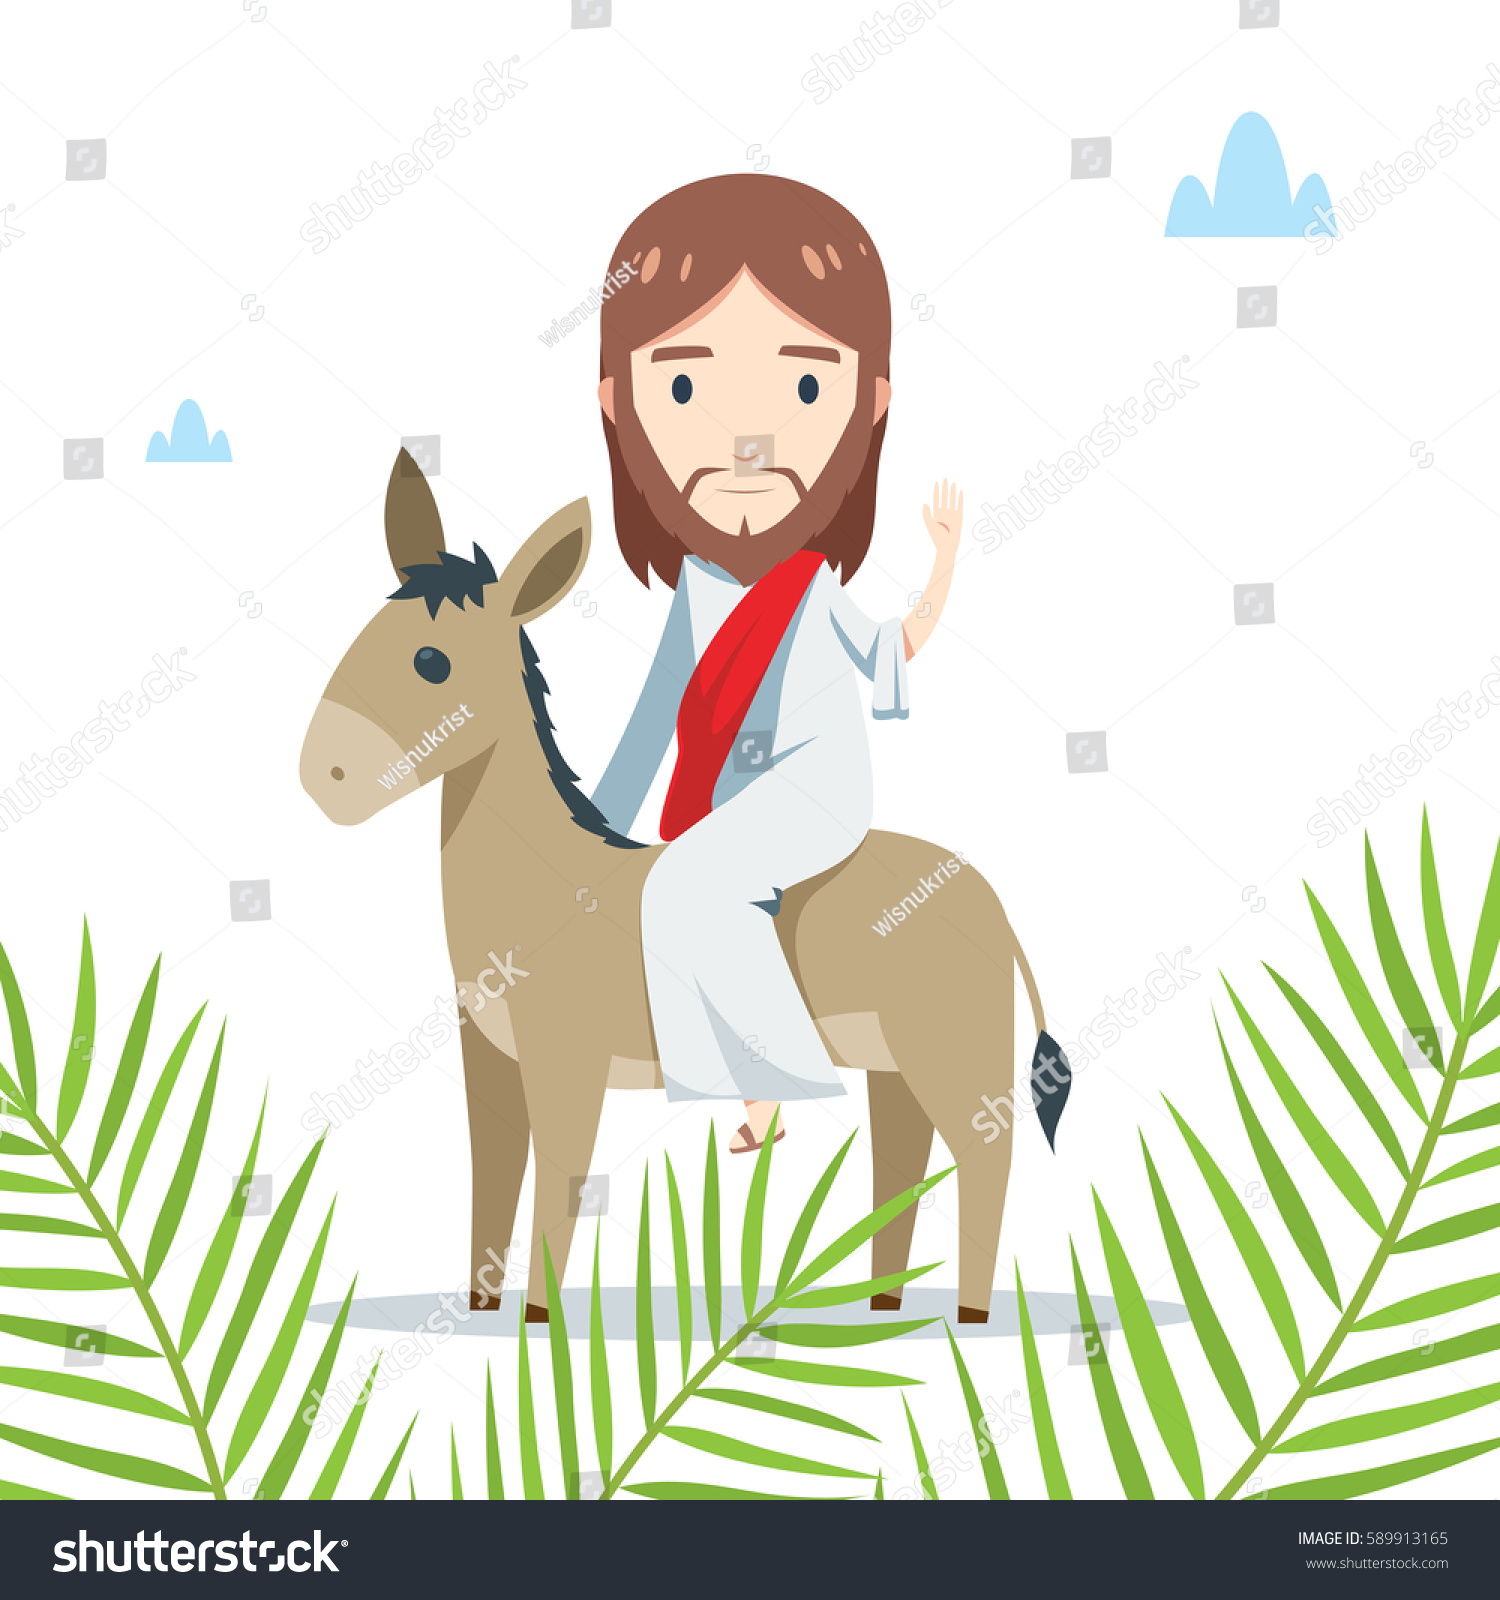 palm sunday jesus is riding a donkey behind palm leaves